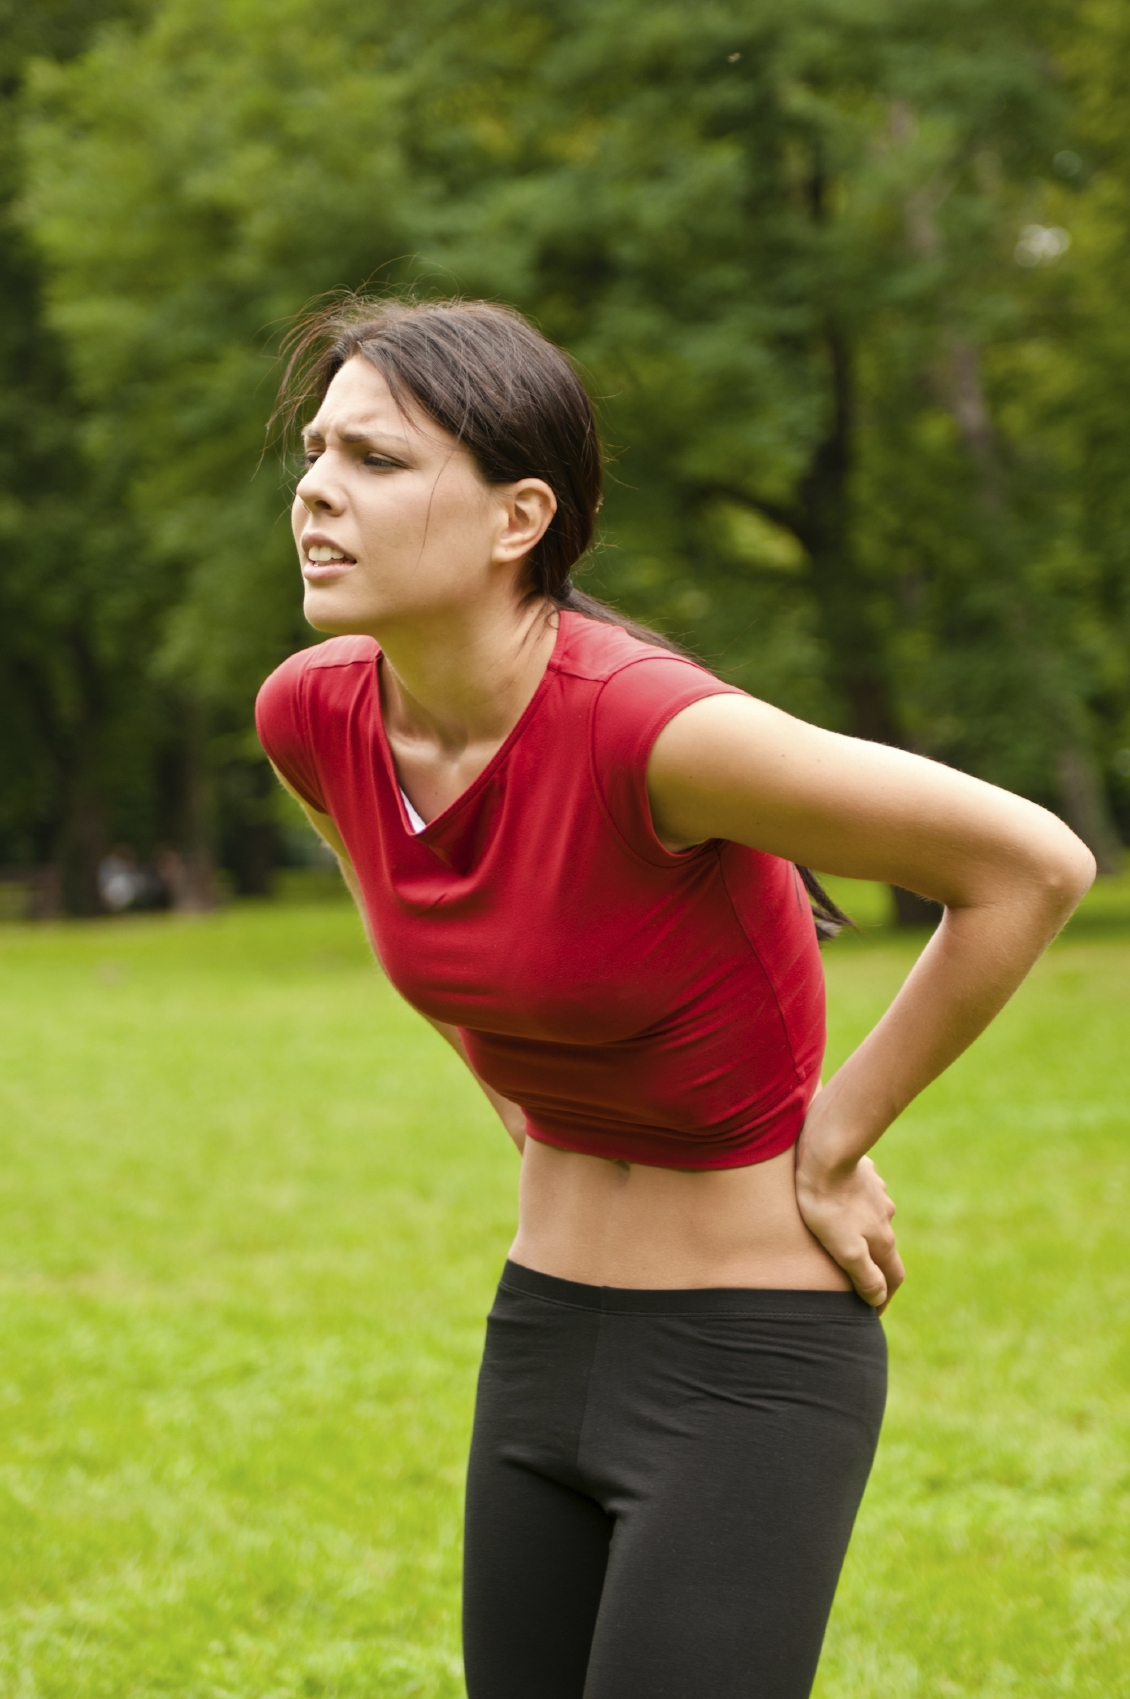 Woman who wants to workout but can't because of back pain